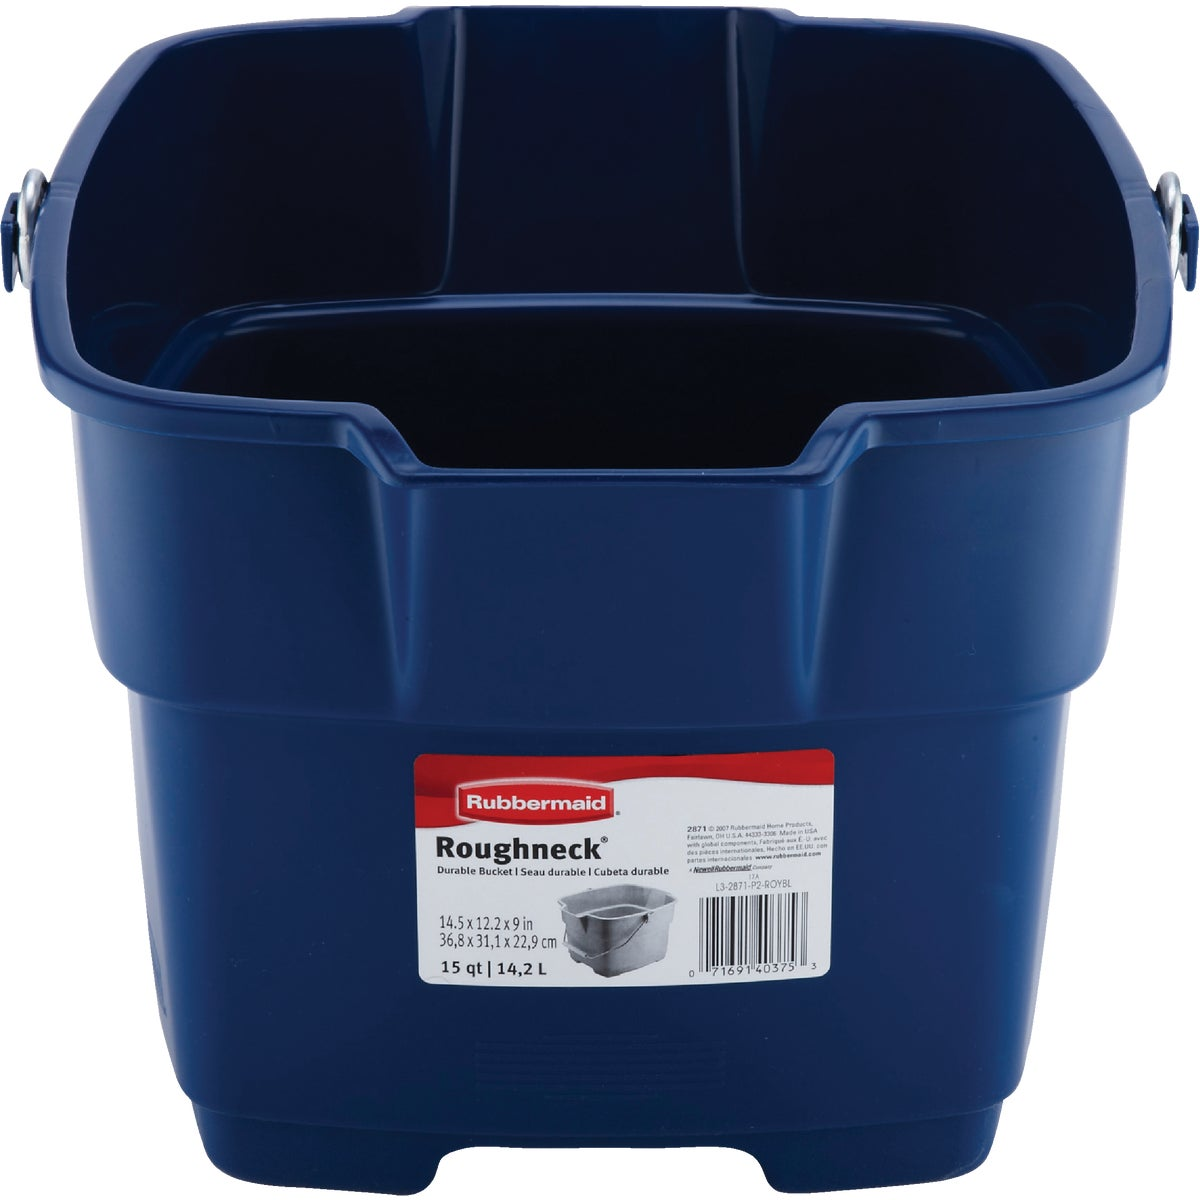 15QT BL METALC BUCKET - FG287100ROYBL by Rubbermaid Home